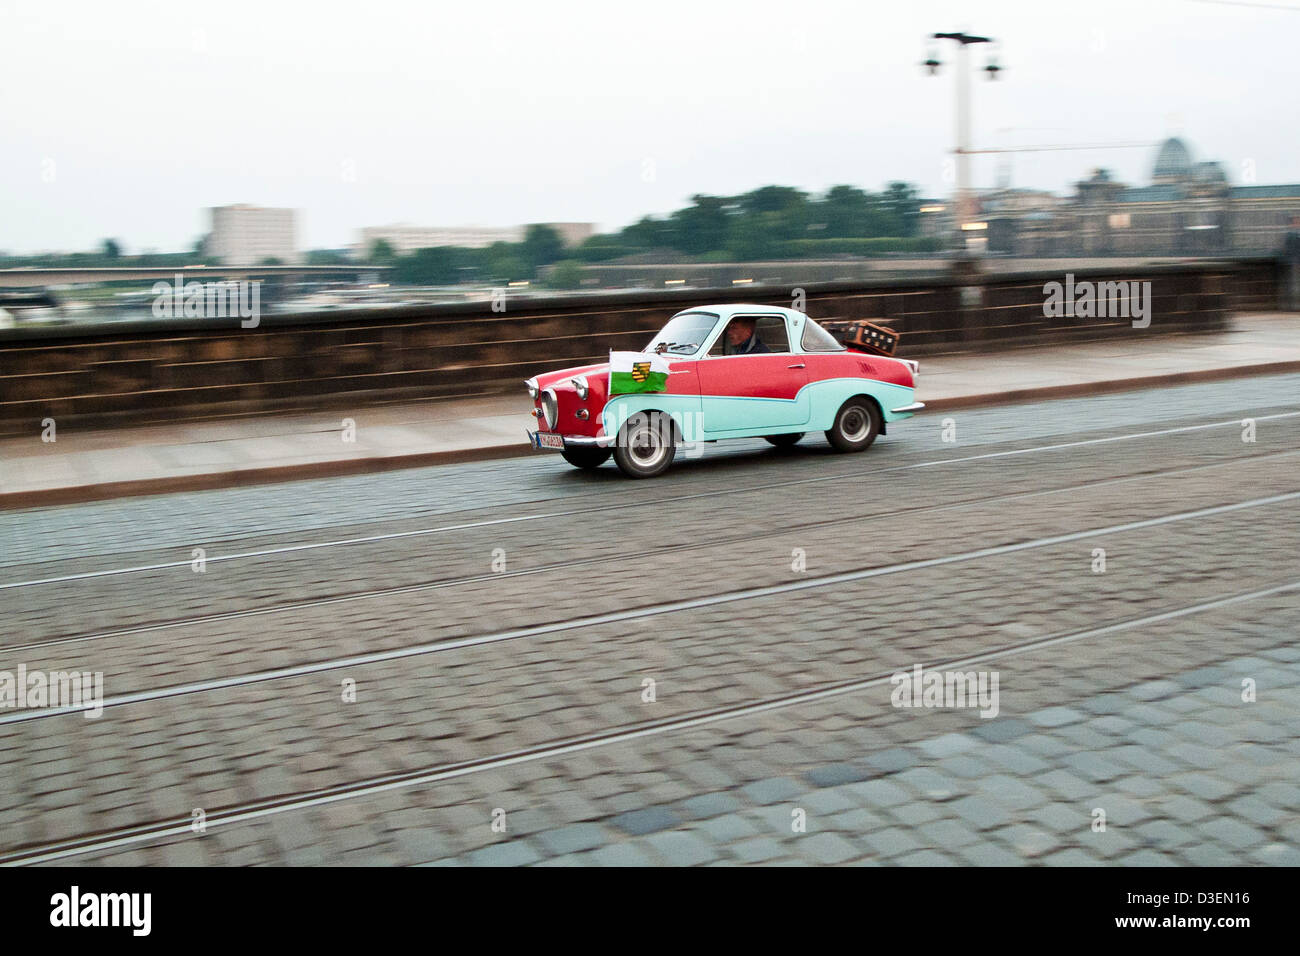 The old East German car Trabant - Stock Image